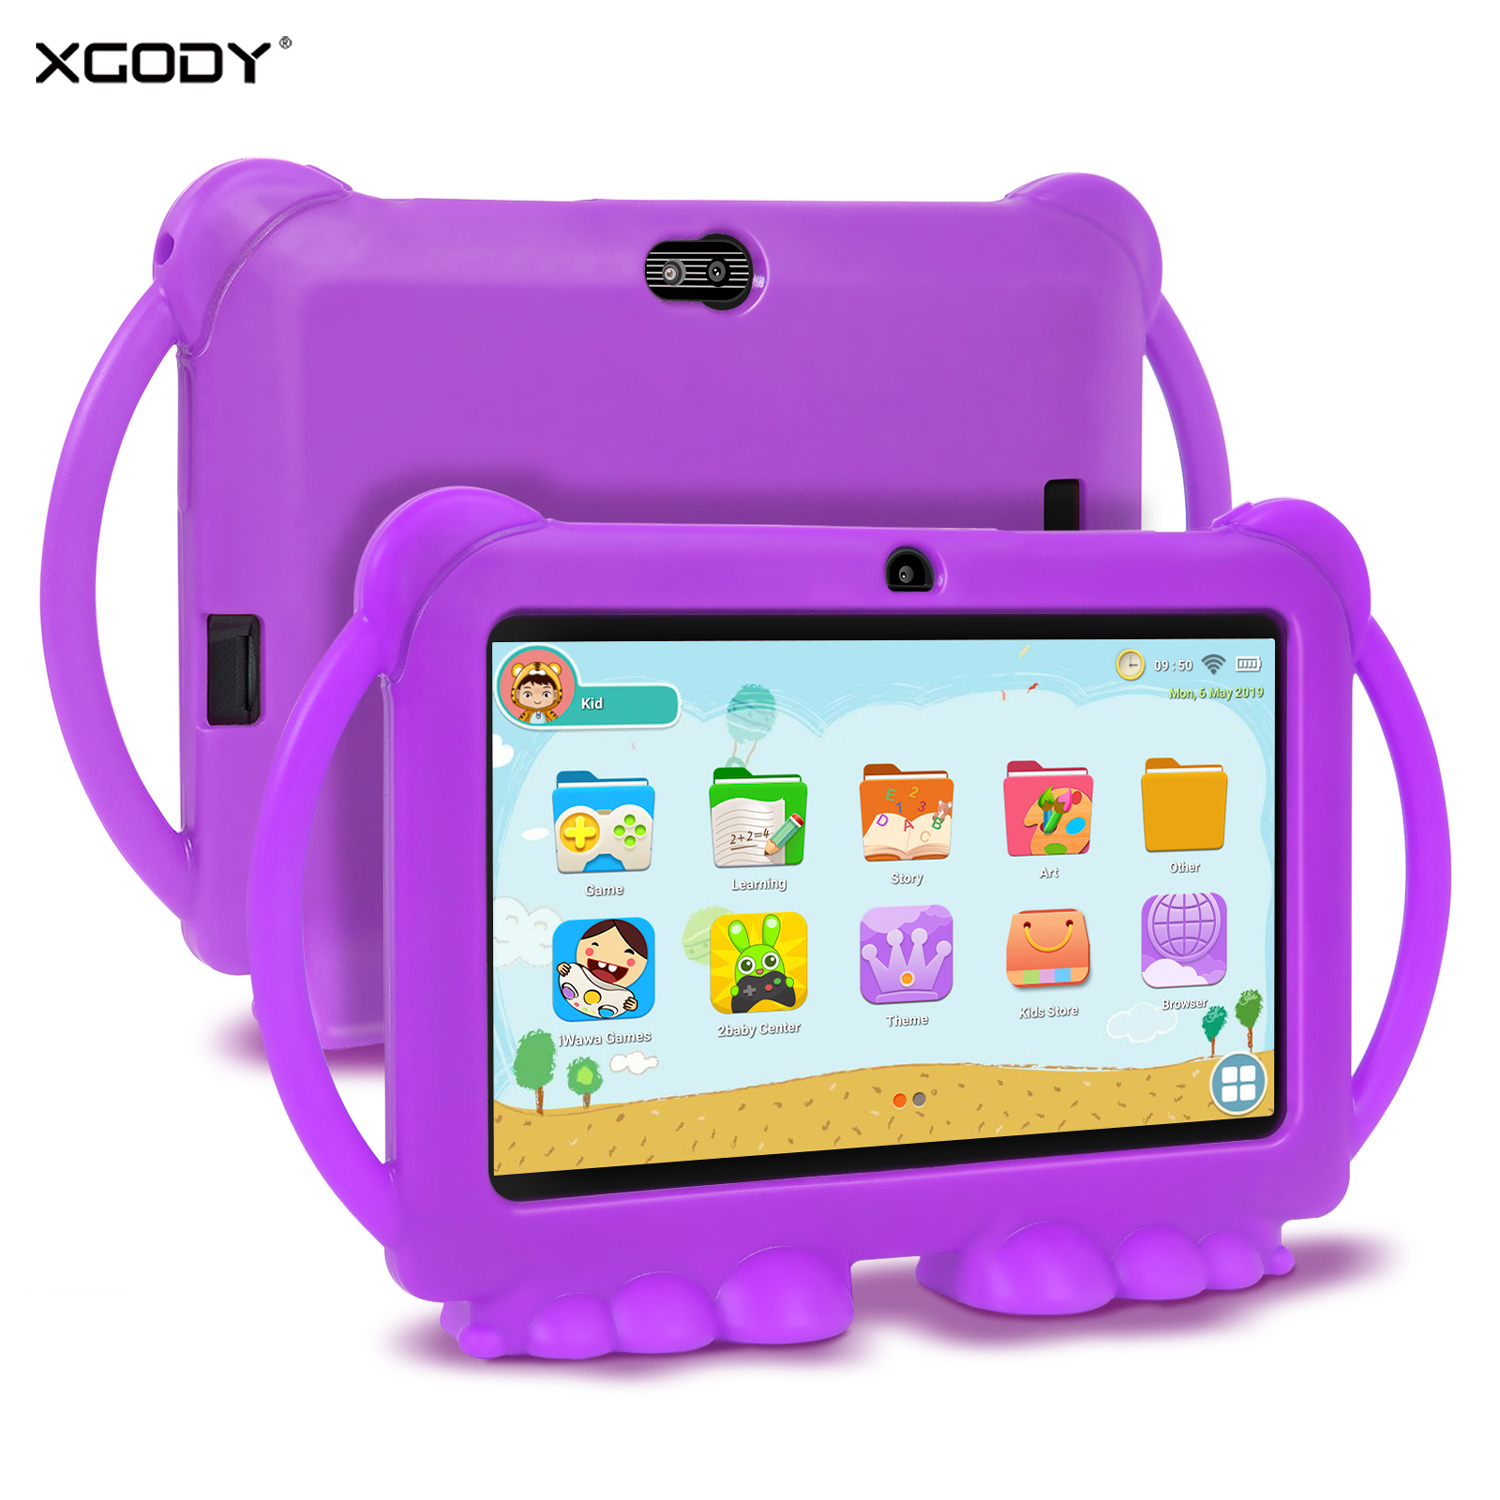 XGODY Children's Learning Education Machine Tablet Best Gift For Kids 7inch HD With Silicone Case USB Charge Quad Core,1GB, 16GB